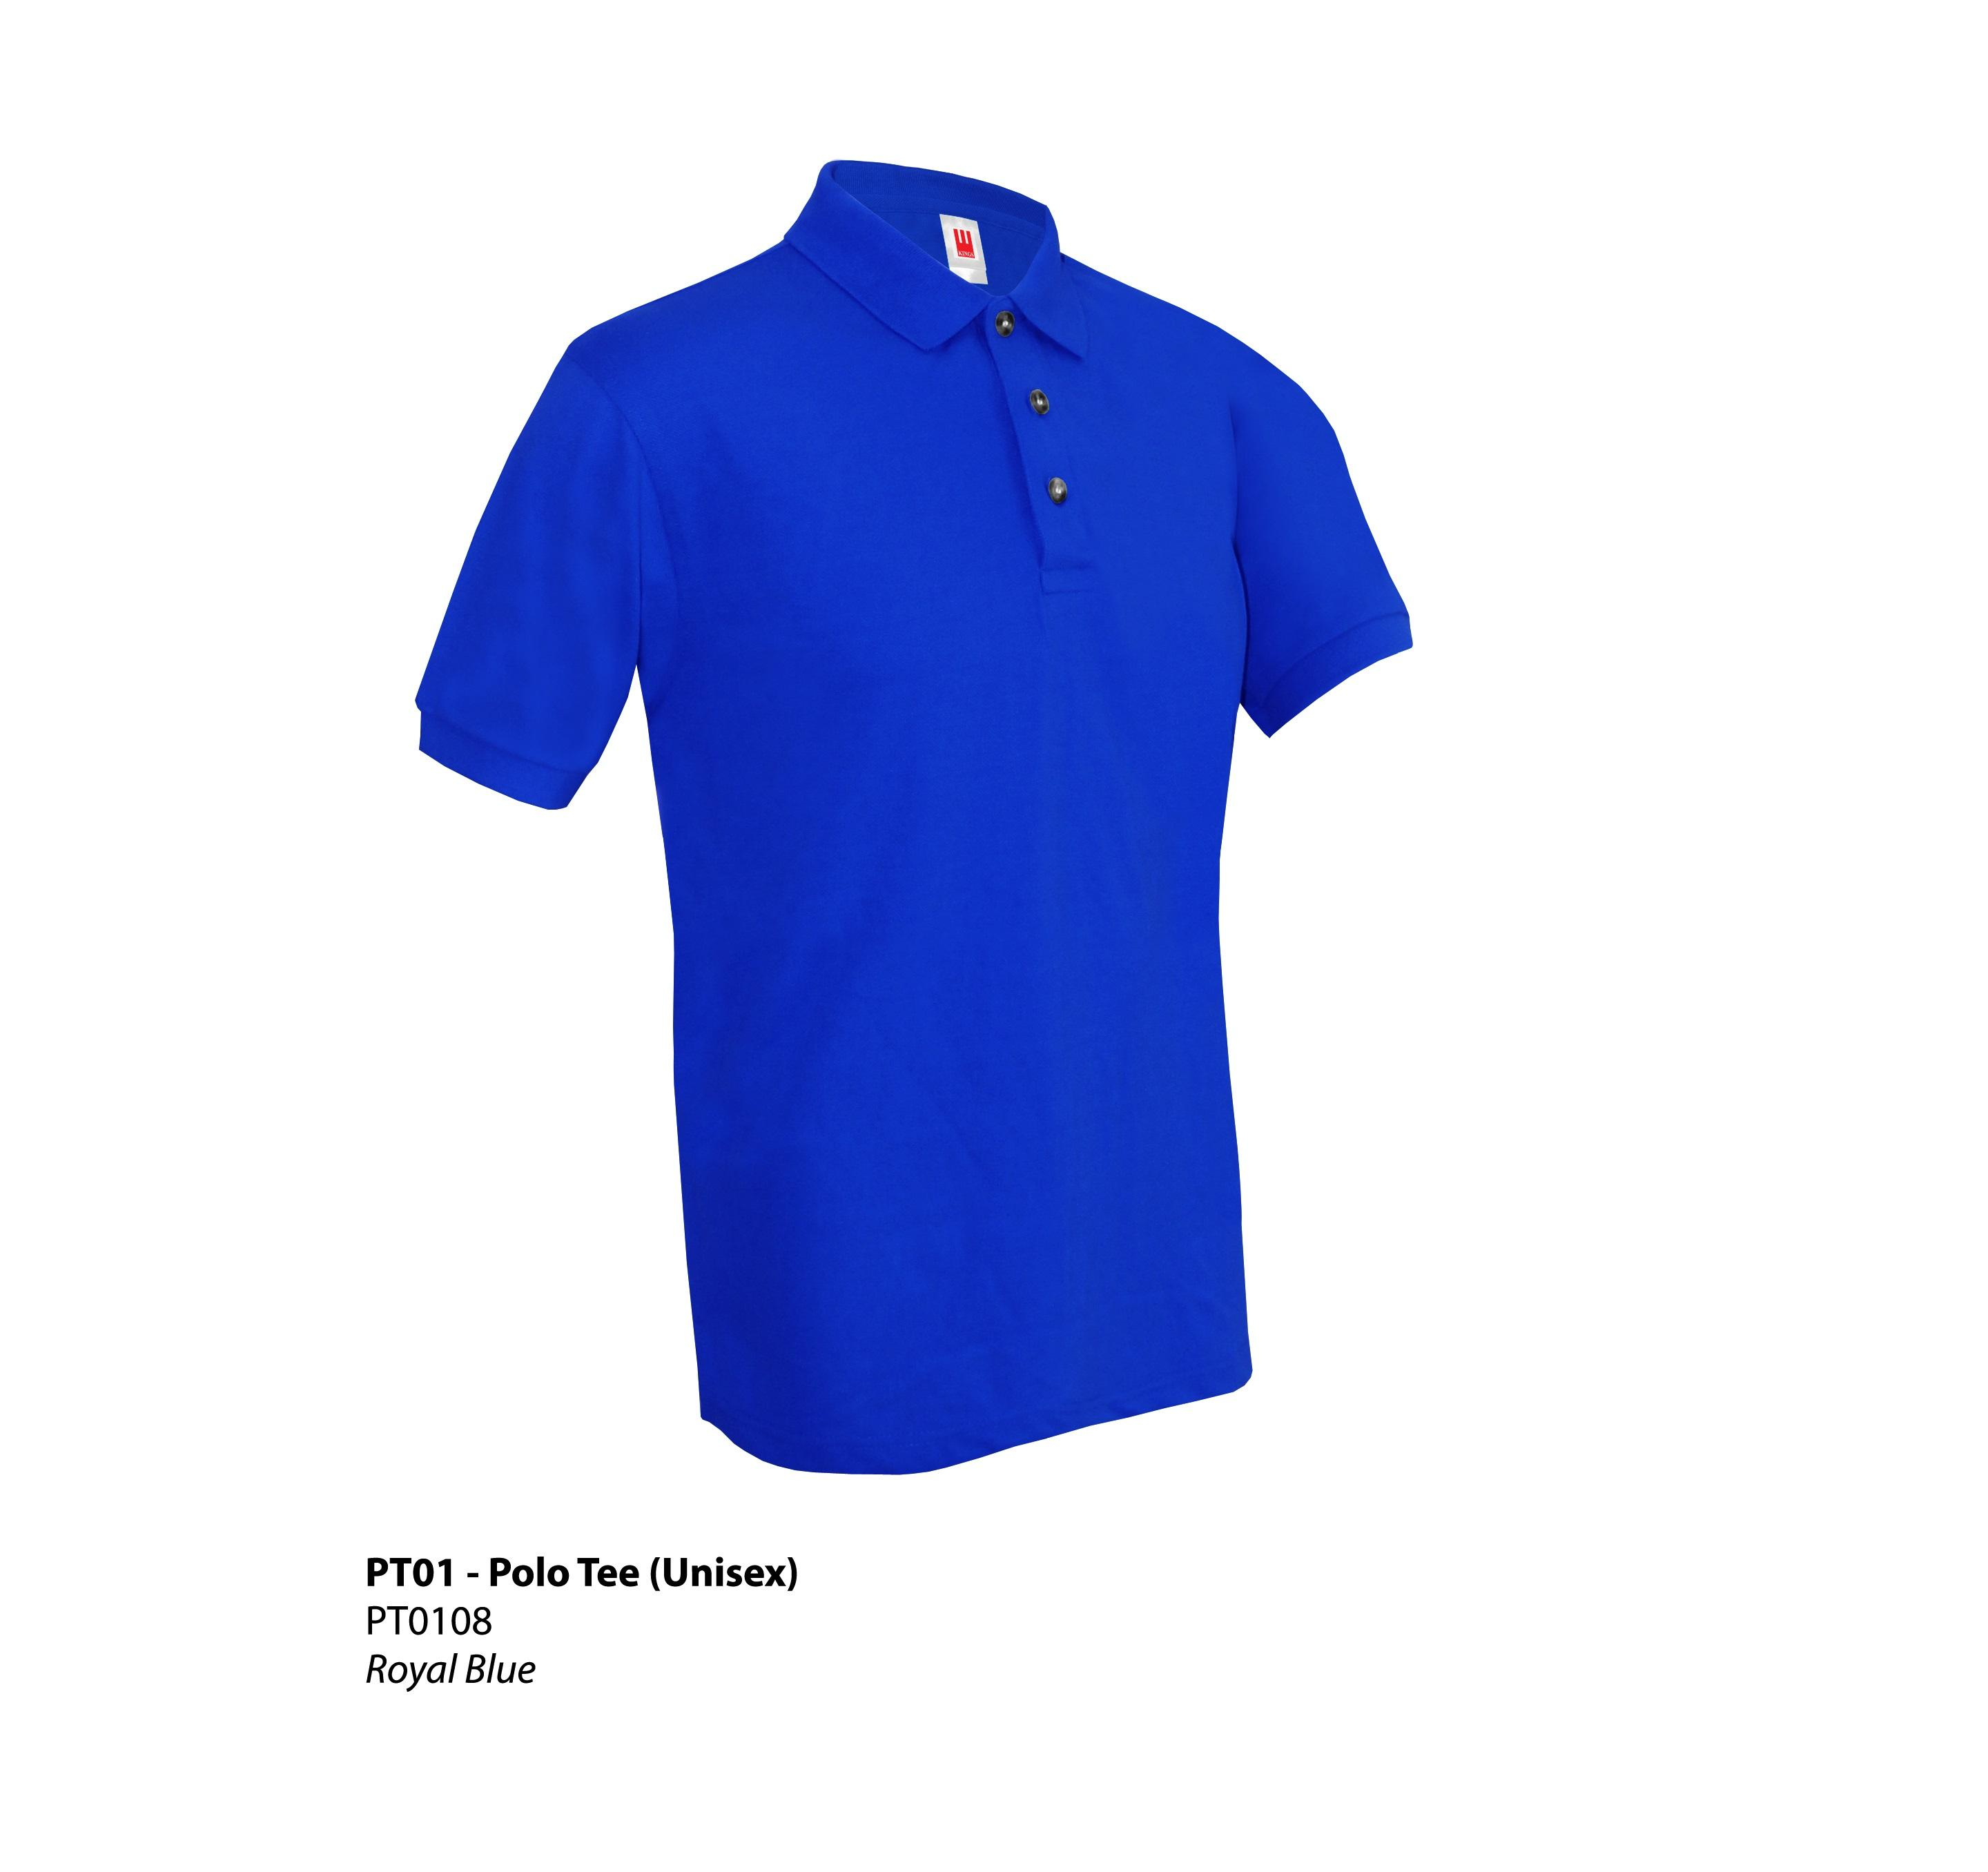 Relatively POLO TEE PT01 (Plain) – 11 Colors (Unisex) | T Shirt 2 u / Online  WY66